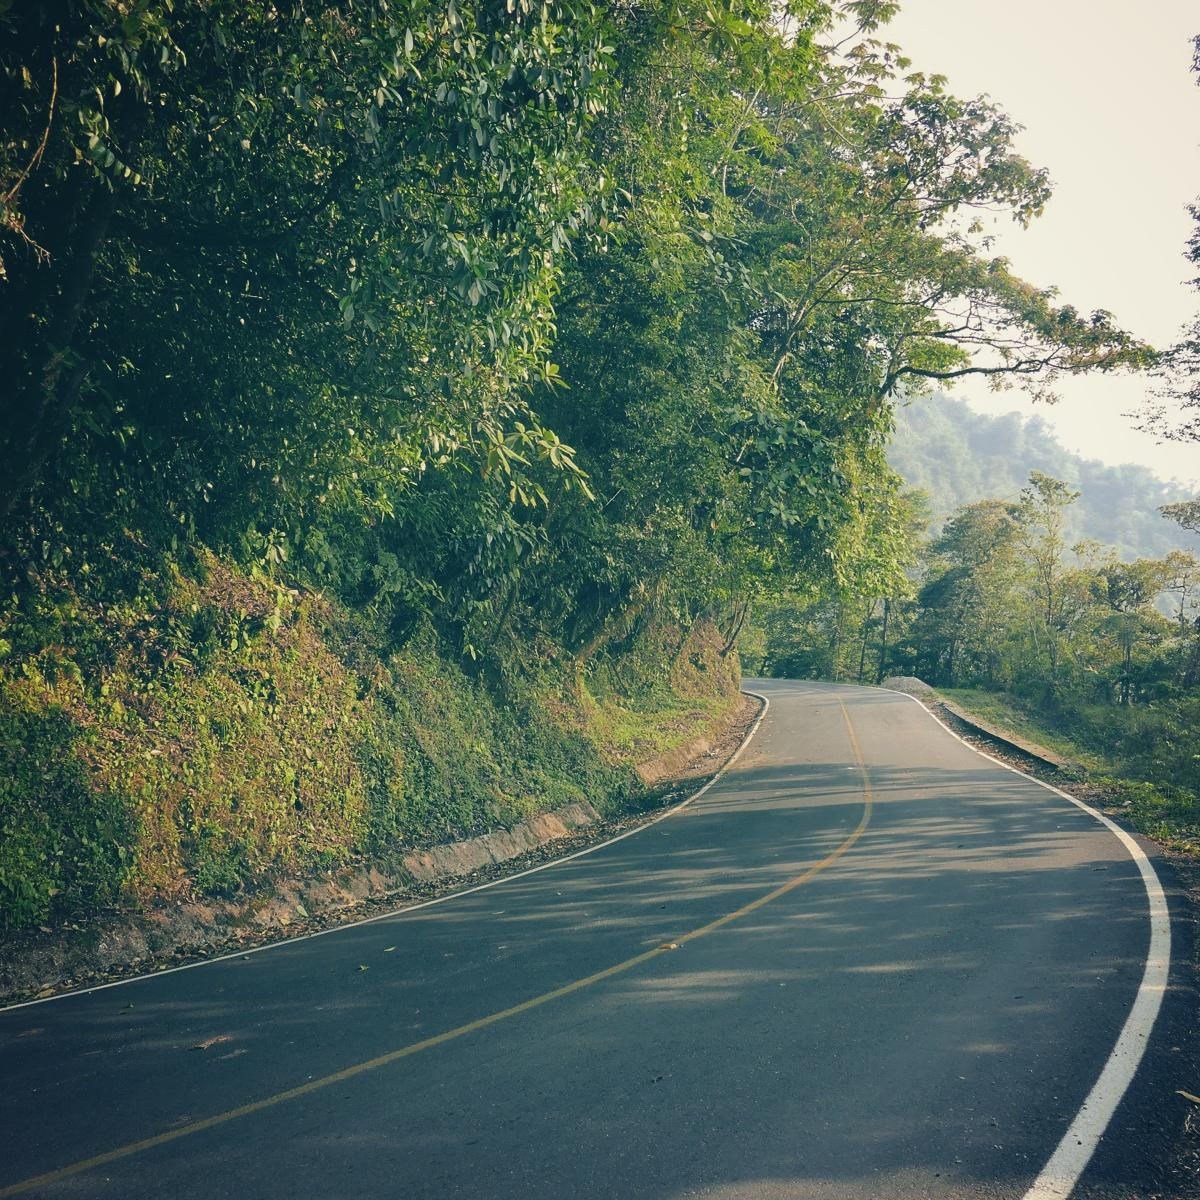 This road in eastern Oaxaca drops more than 10,000 feet from high, cool pine forests to low, hot rainforests. Noah Strycker